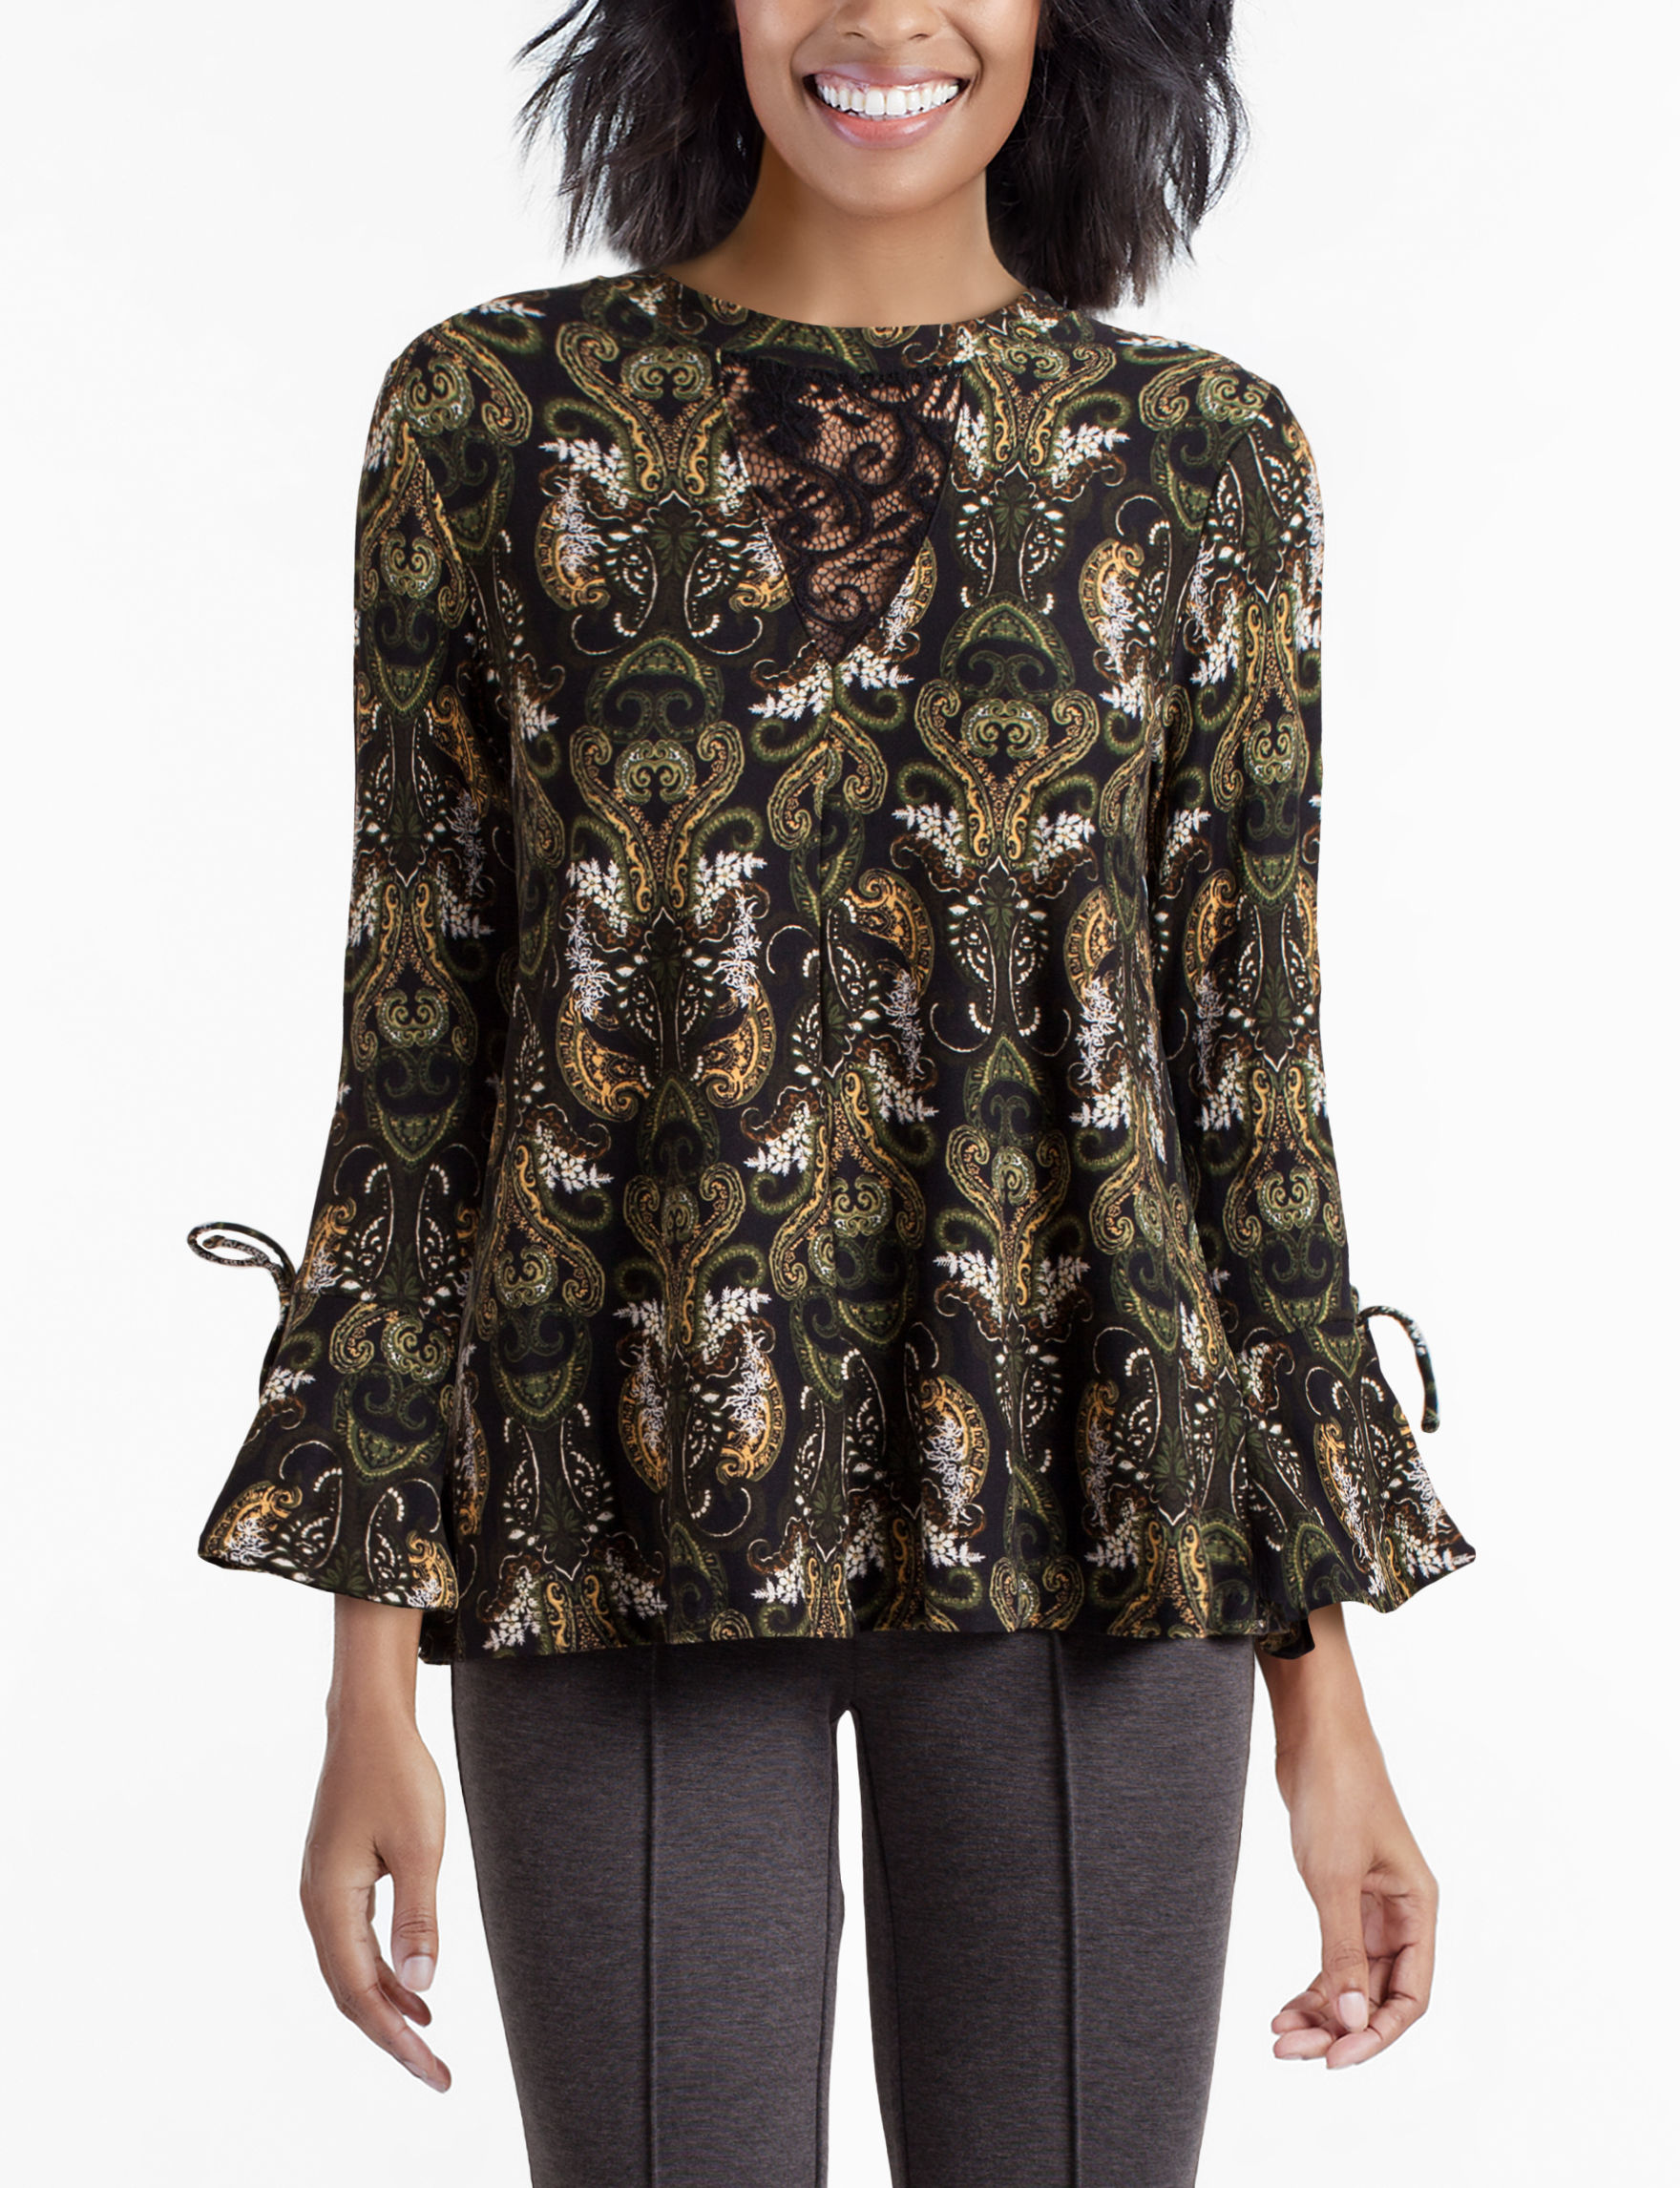 Skyes The Limit Black / Green Shirts & Blouses